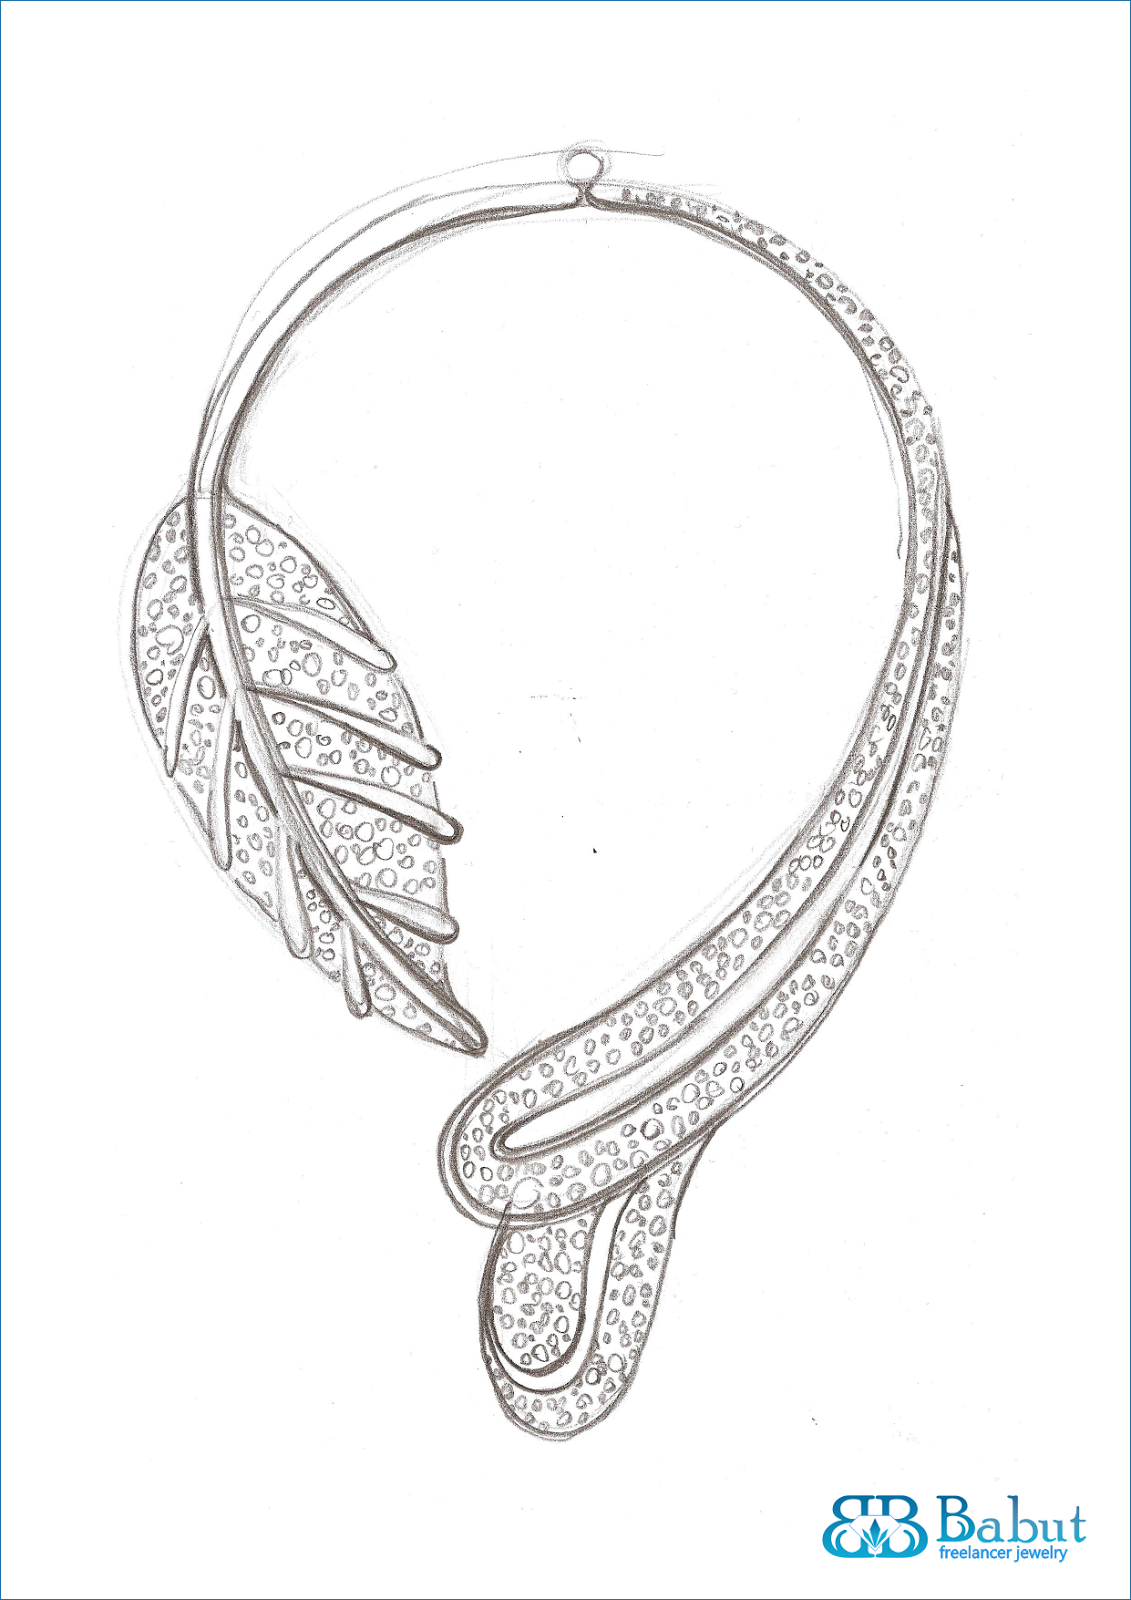 Sketch Jewelry - Babut Florin - Valentin: sketches jewelry design